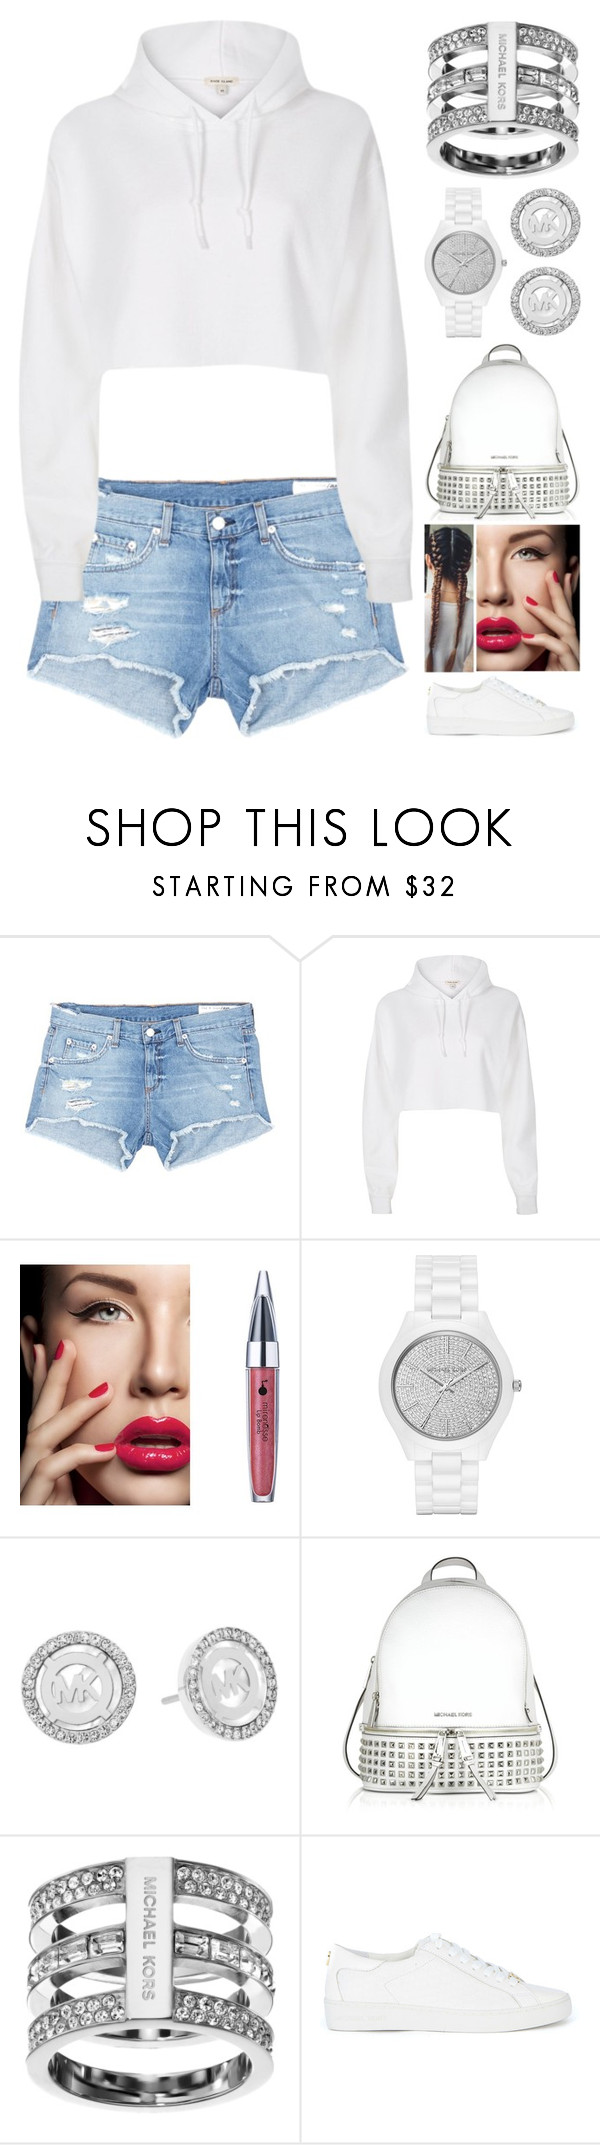 """""""Street Style"""" by jessicagrewal ❤ liked on Polyvore featuring rag & bone/JEAN, River Island and Michael Kors"""